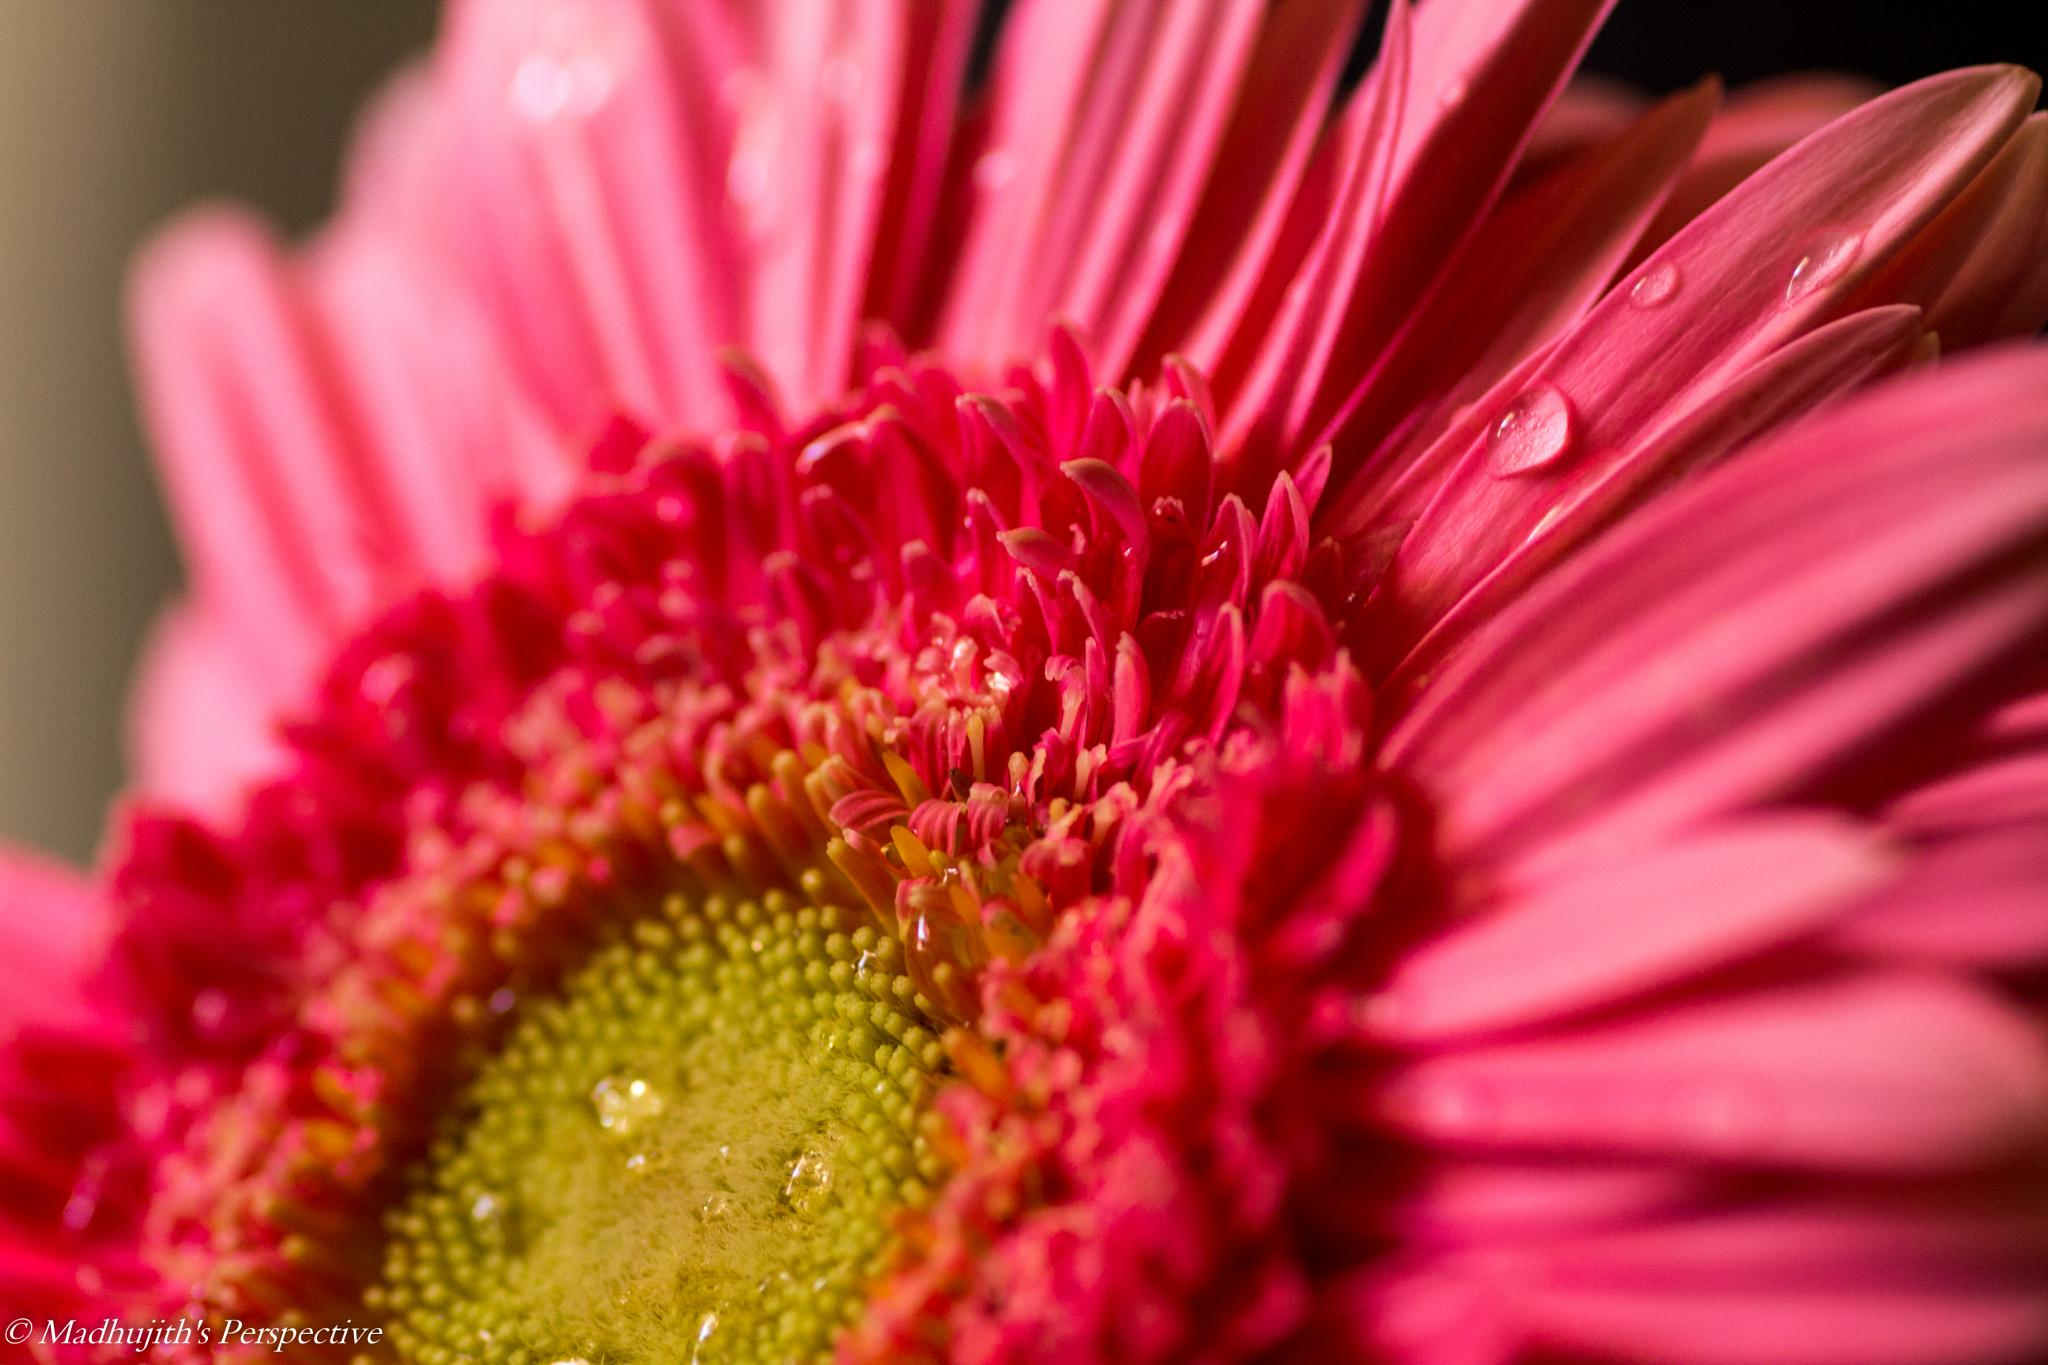 Drops of freshness by madhujith